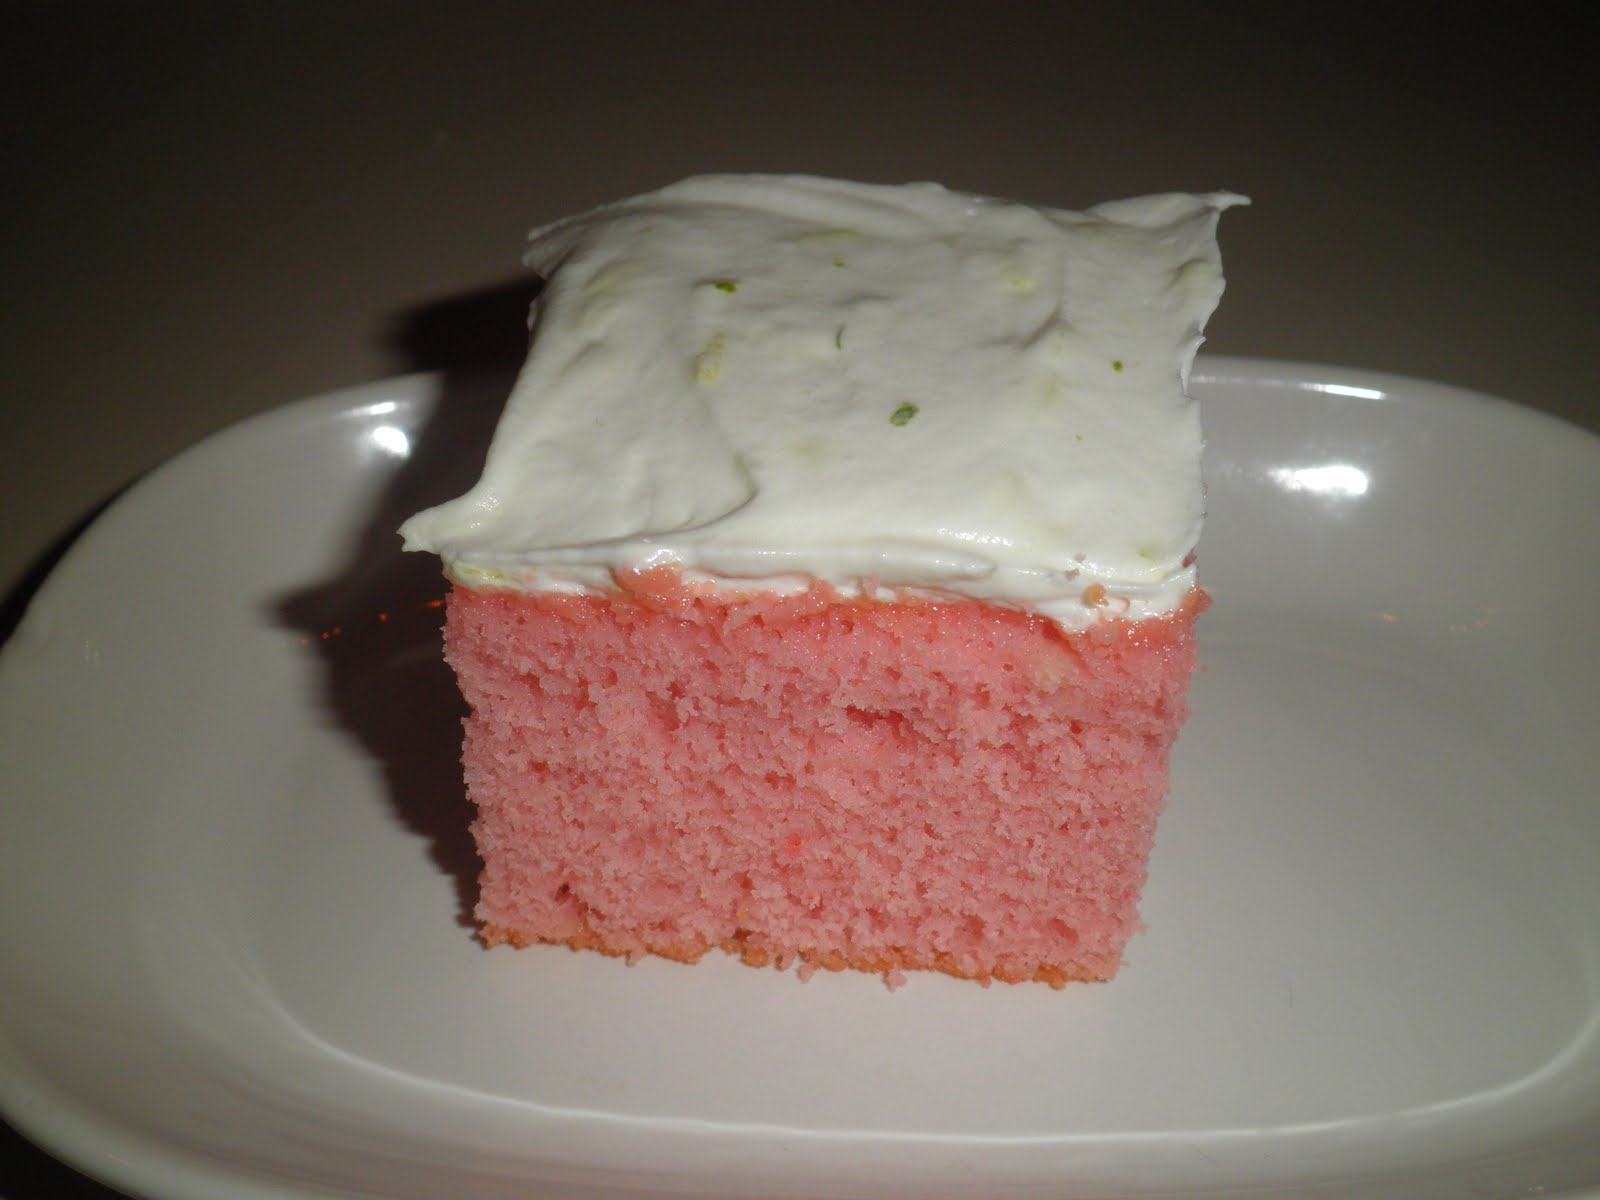 Secrets from the Cookie Princess: Strawberry Margarita Cake